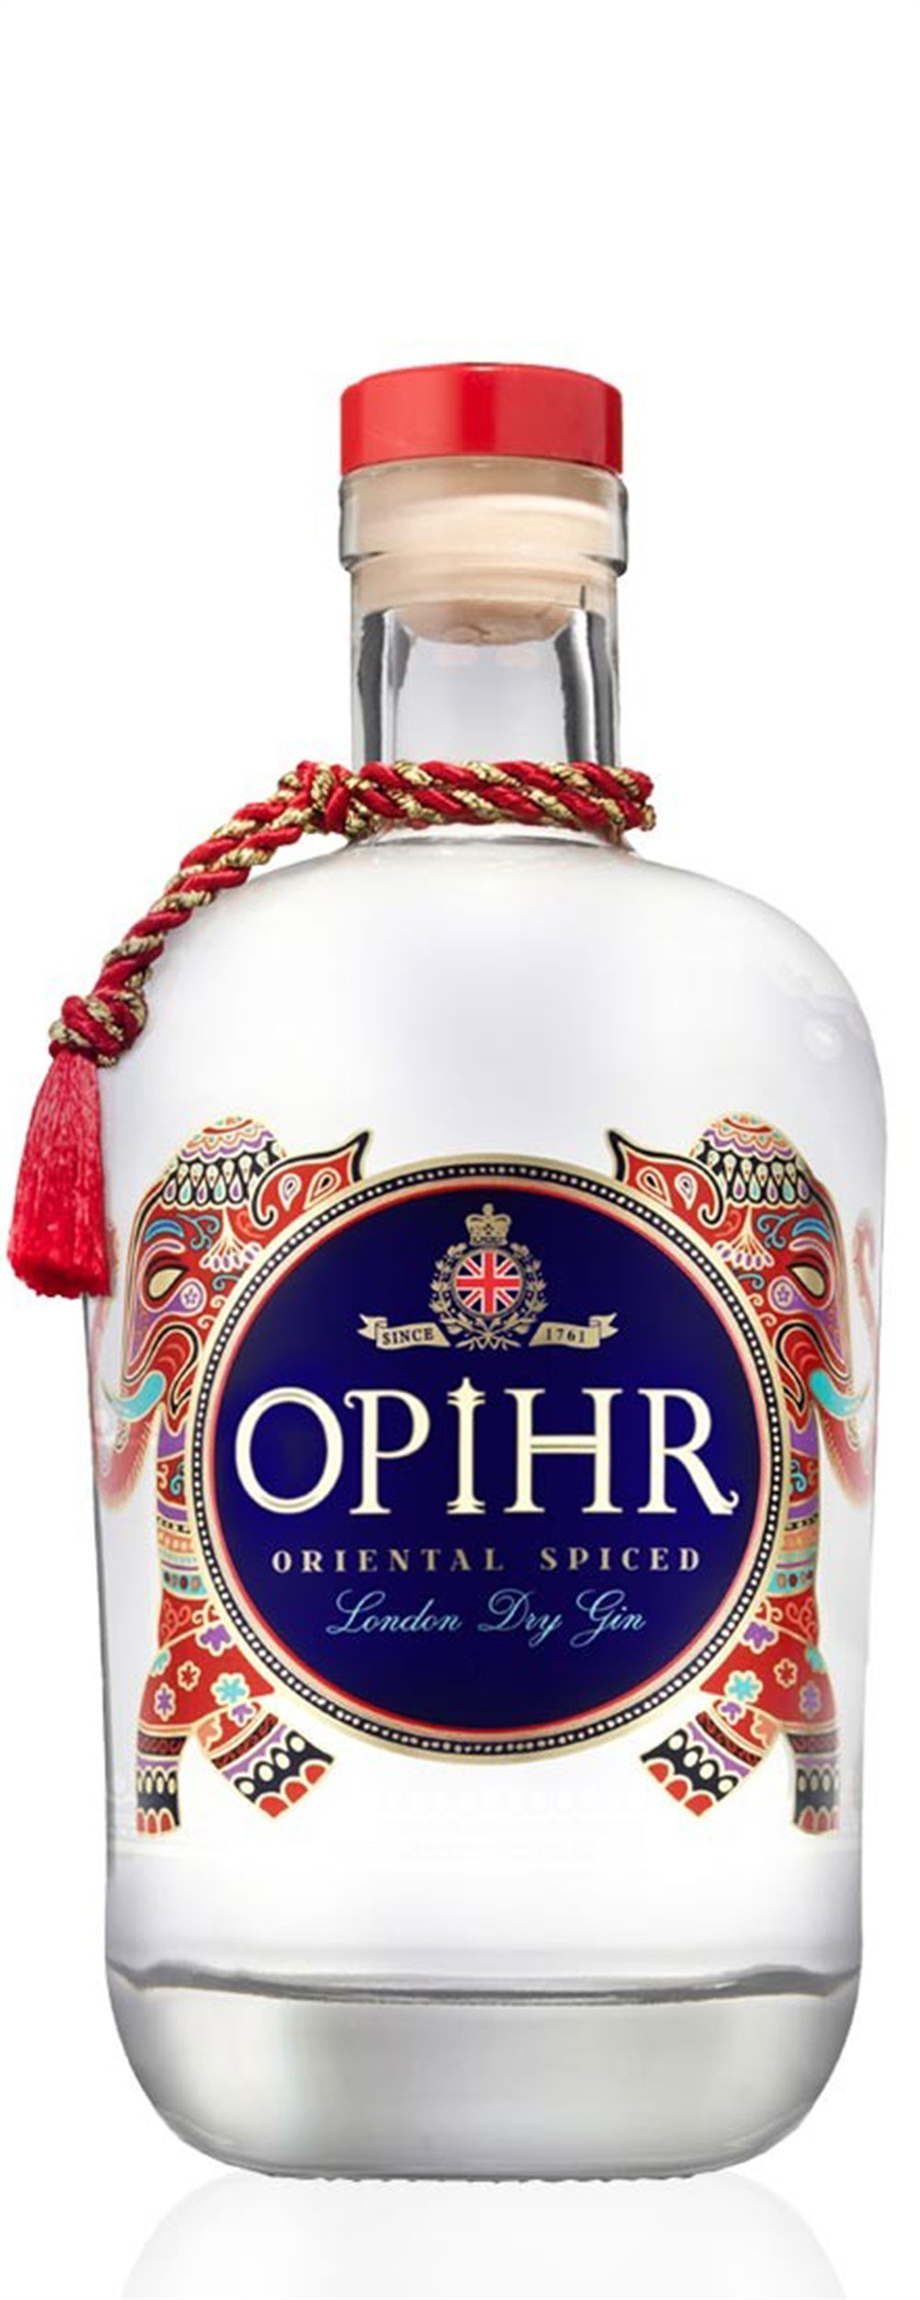 OPIHR ORIGINAL SPICED LONDON DRY GIN